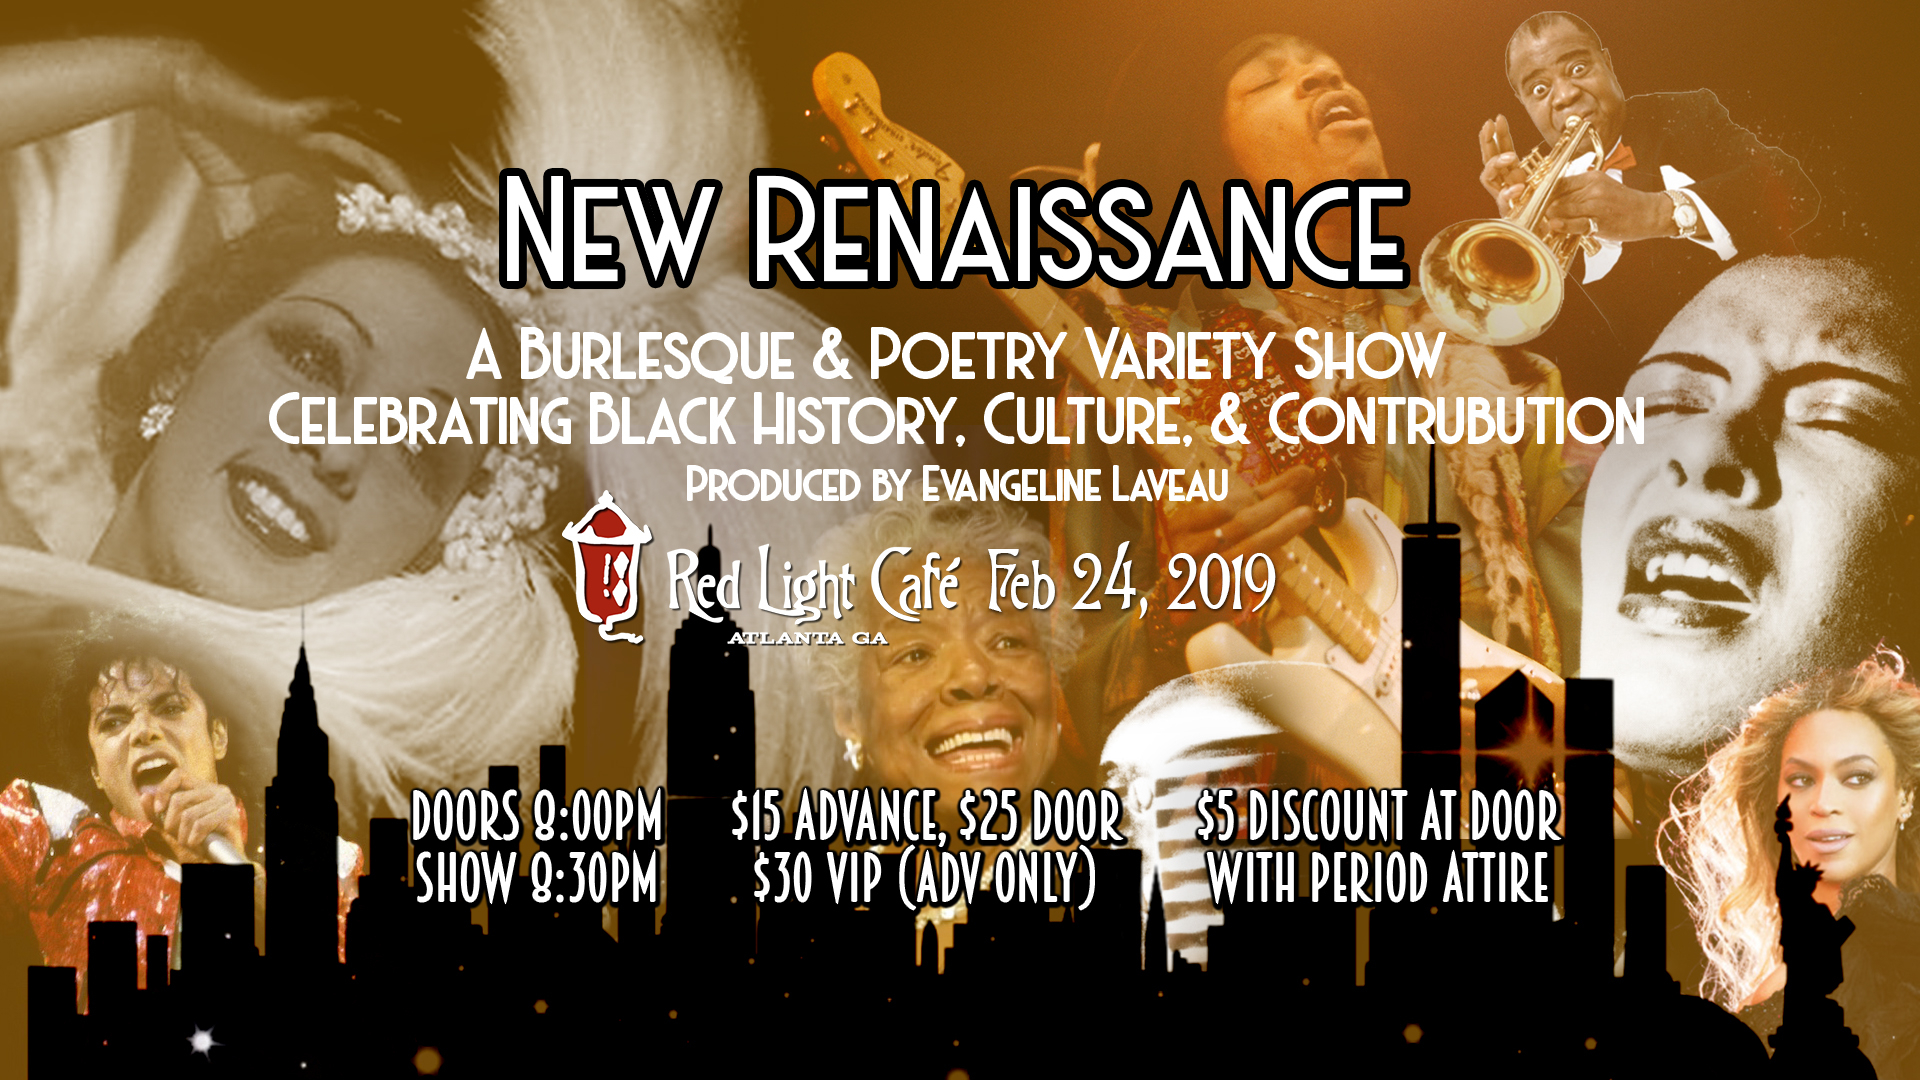 New Renaissance: A Burlesque & Poetry Variety Show Celebrating Black Culture & History — February 24, 2019 — Red Light Café, Atlanta, GA